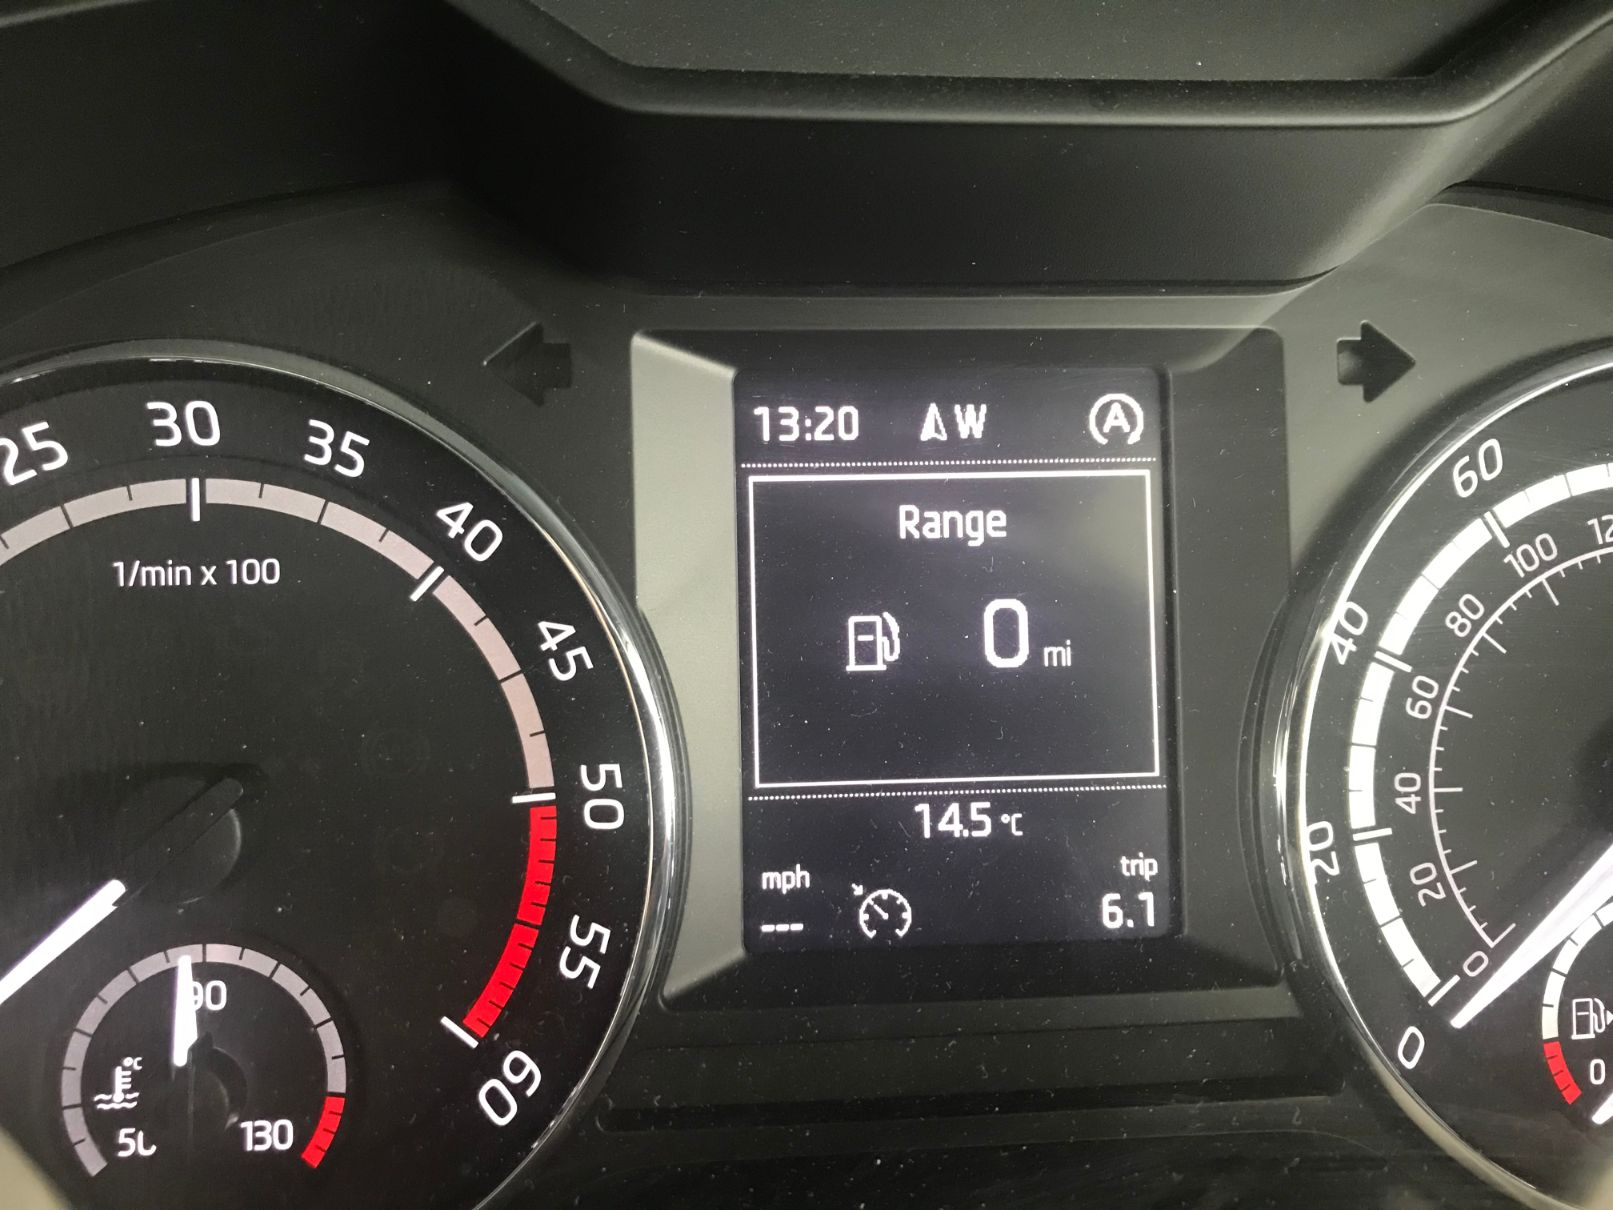 Running On Fumes Just How Much Fuel Do You Have On Empty Skoda Octavia Mk3 Hypermiling Fuel Saving Tips Industry News Forum